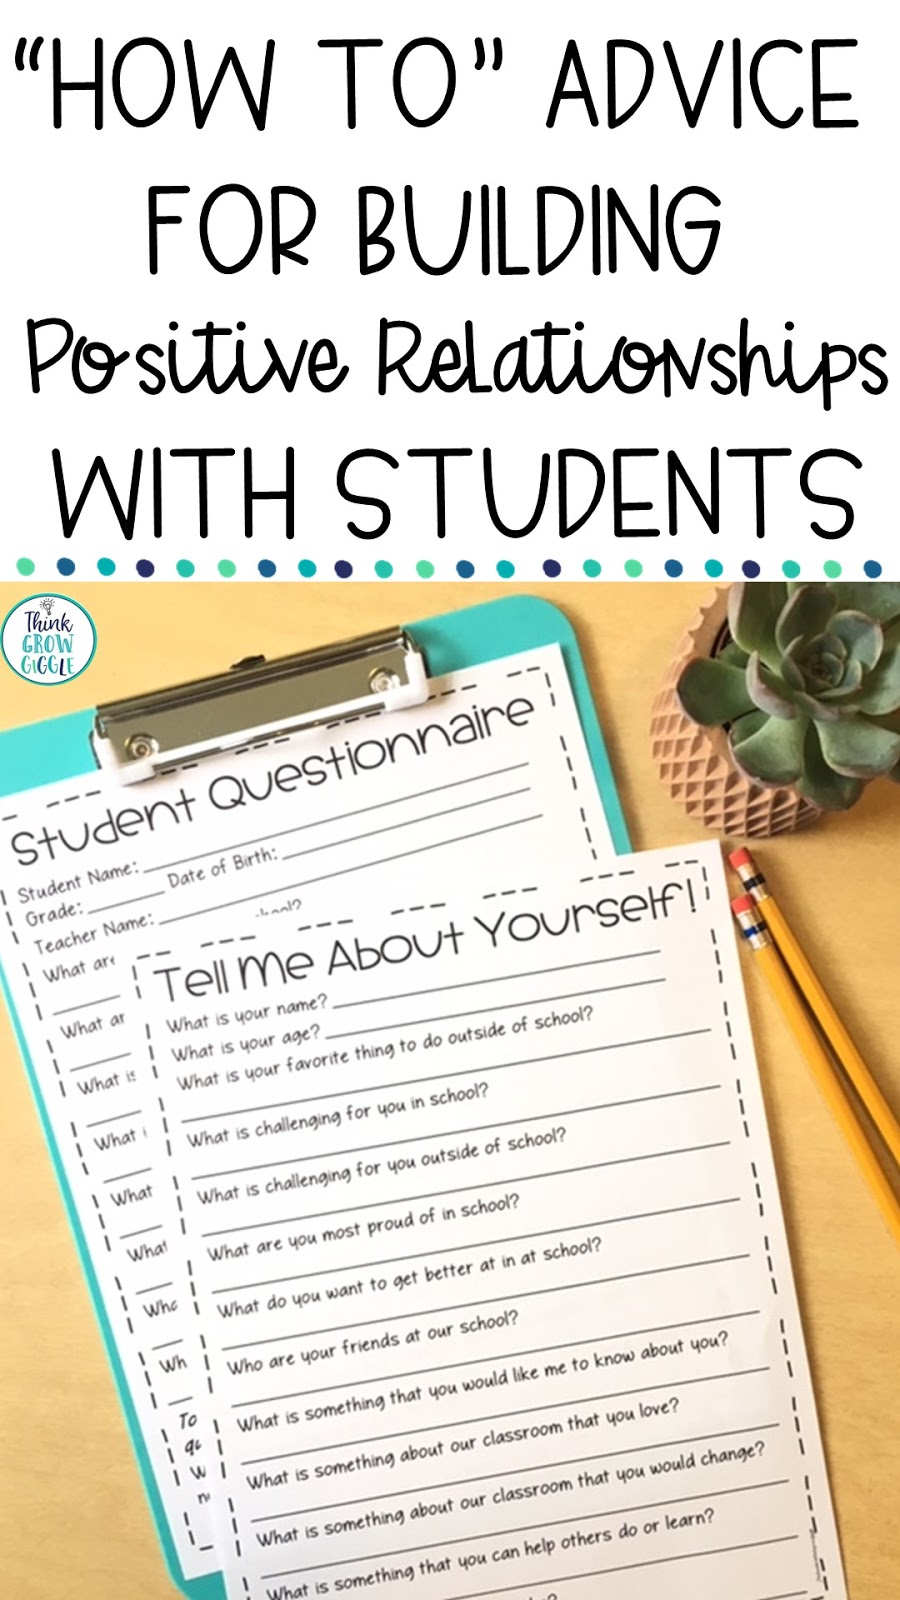 How To Advice for Building Positive Relationships with